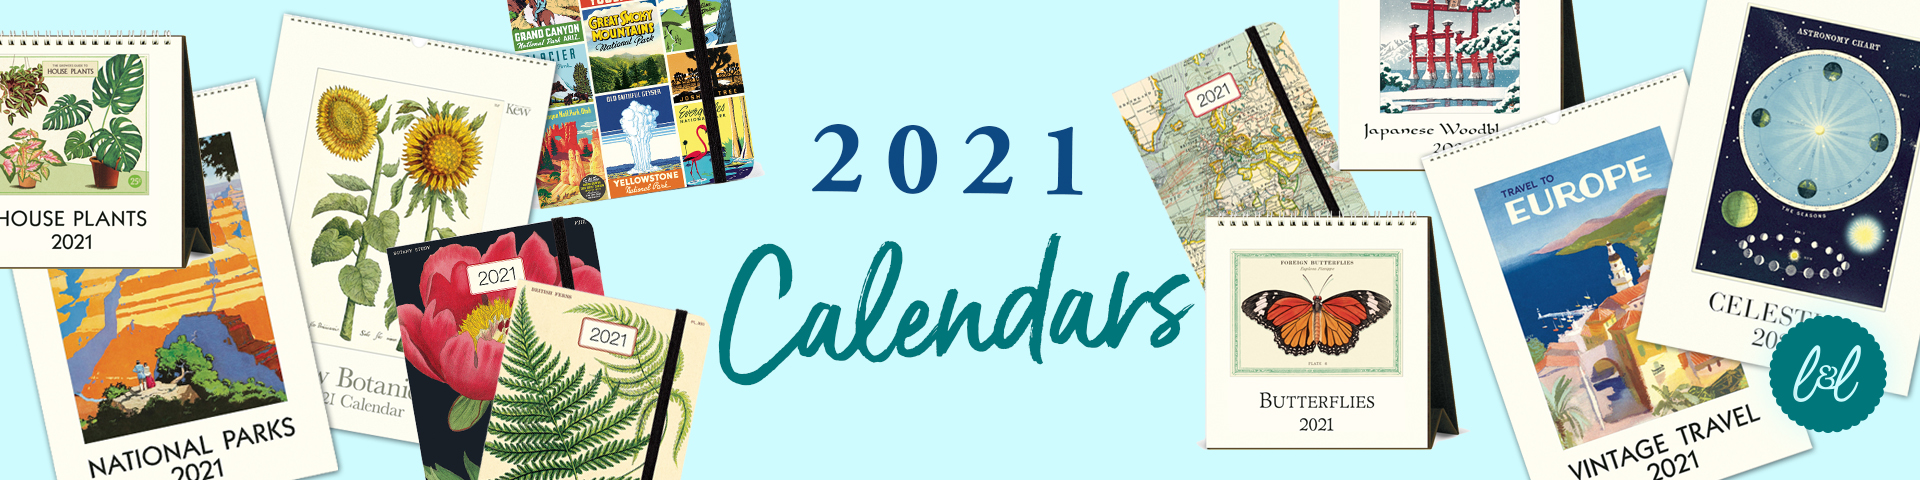 2021 Calendars, Diaries and Planners